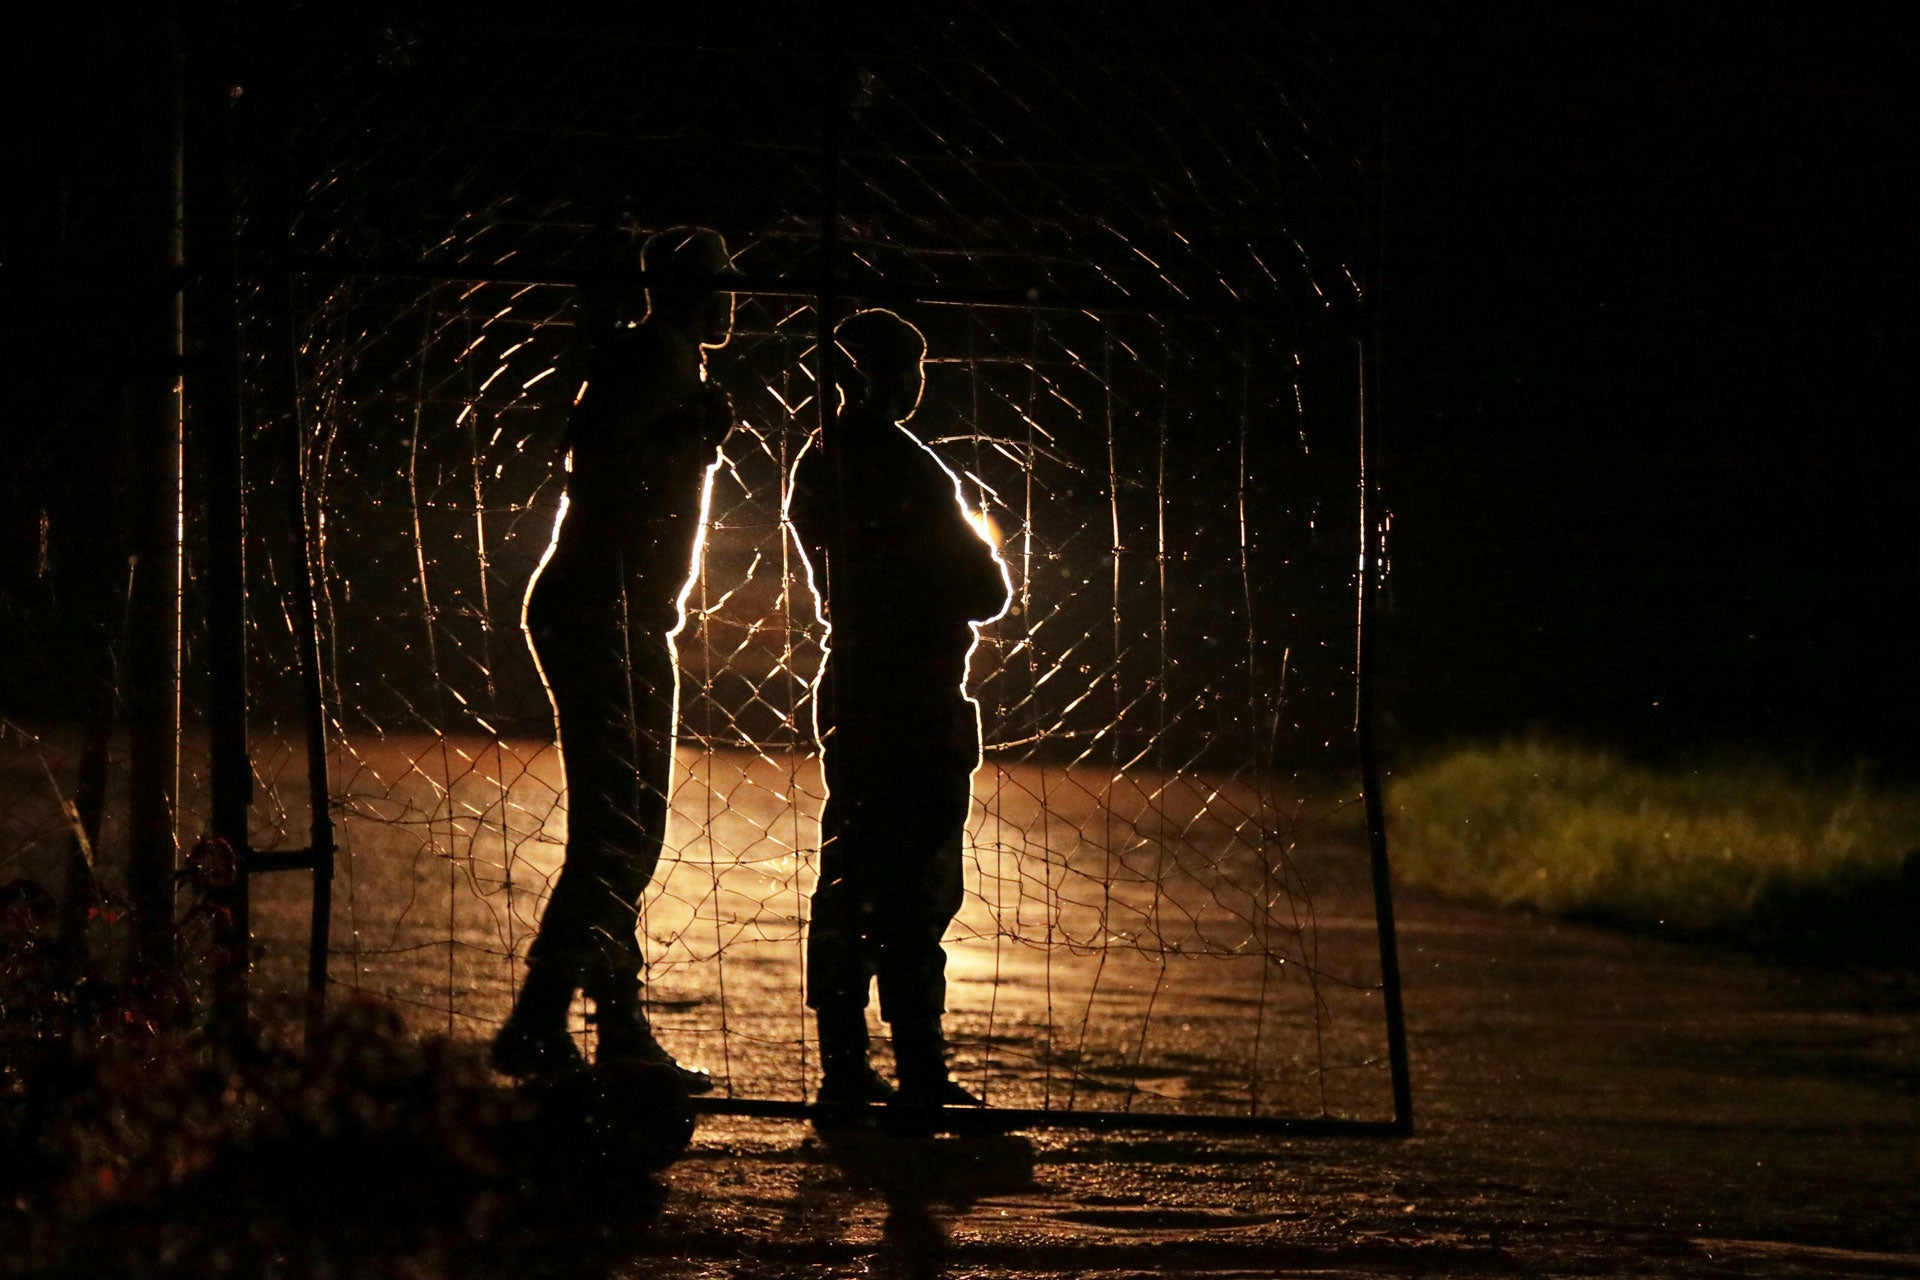 Armed Zimbabwean prison guards are seen at the entrance of Chikurubi prison on the outskirts of Harare, January 30, 2019.